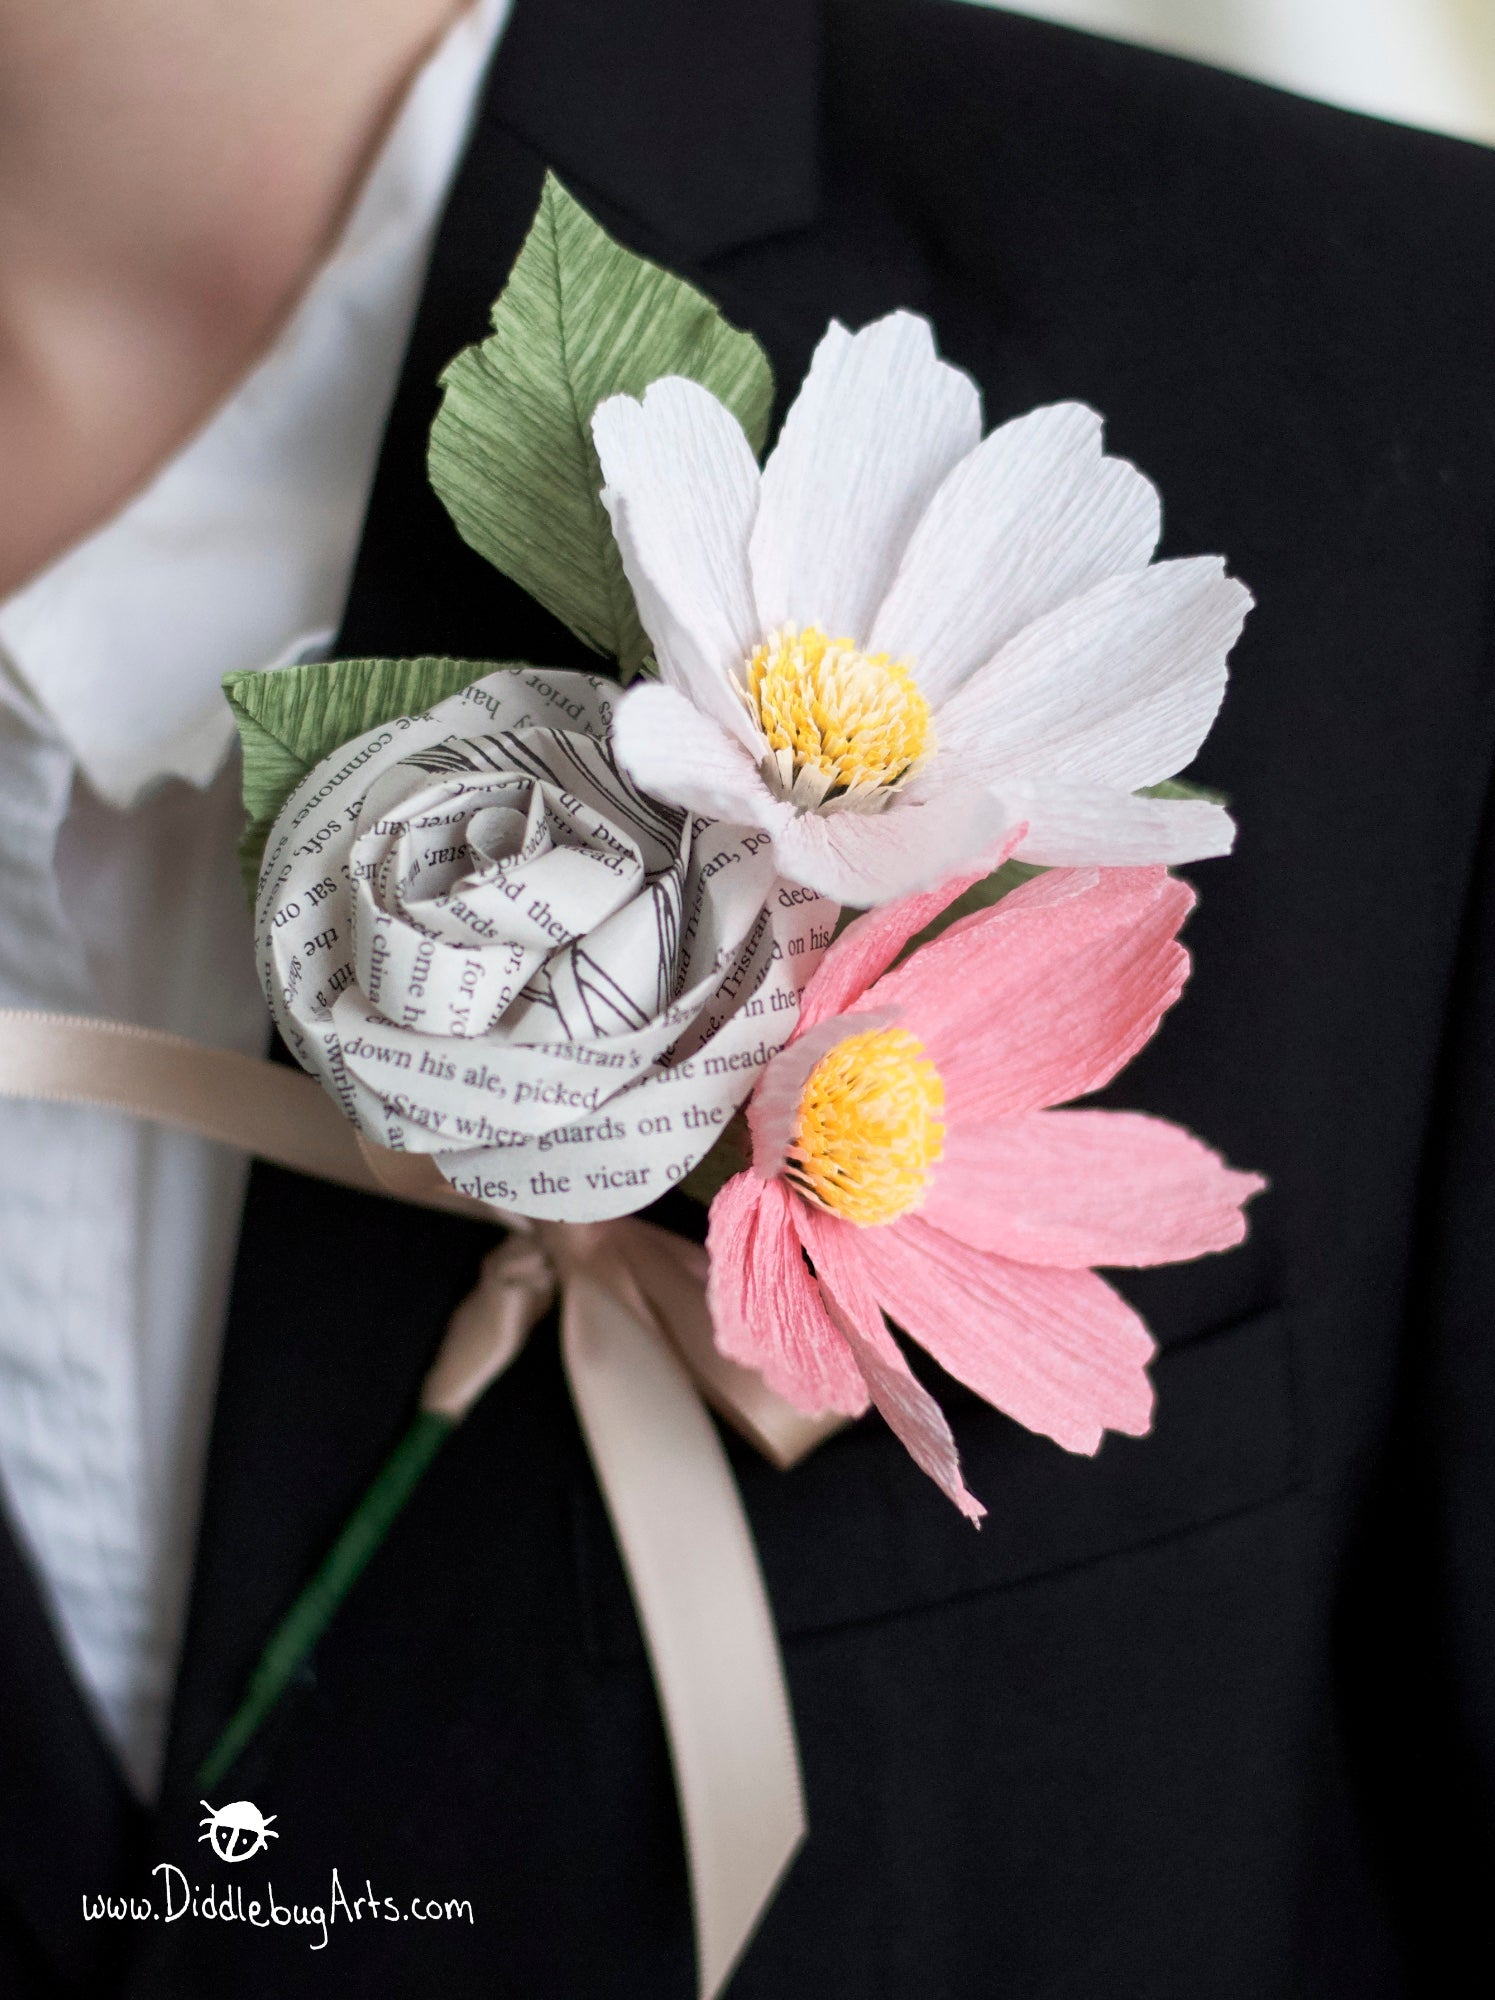 Paper Garden Cosmos and Book Page Rose Pin On Corsage or Boutonniere